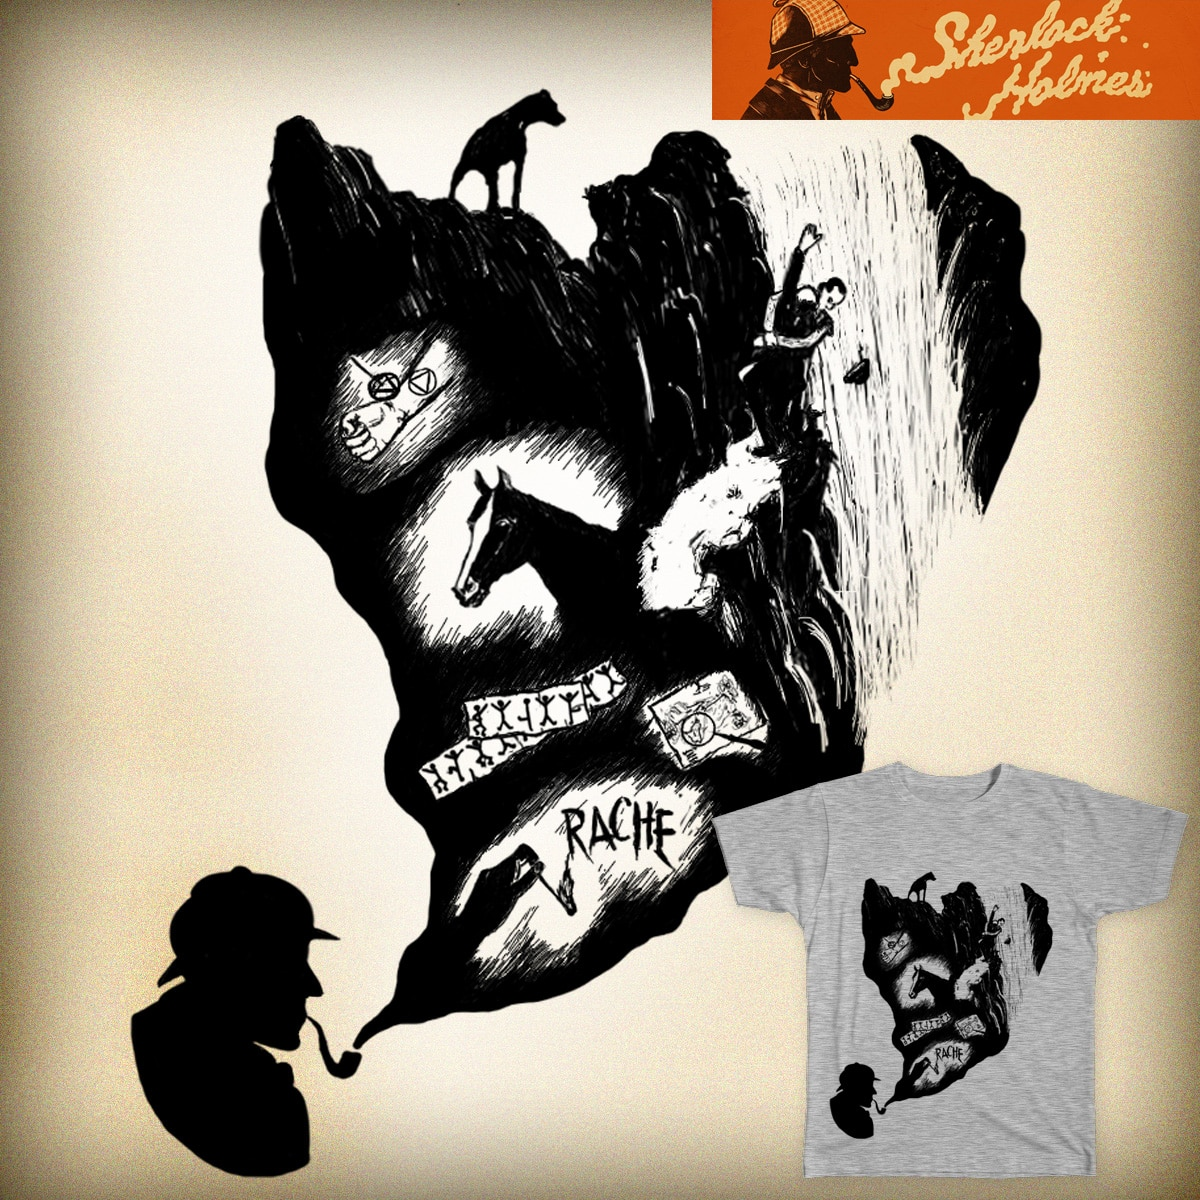 The Adventures of Sherlock Holmes by Linhan on Threadless